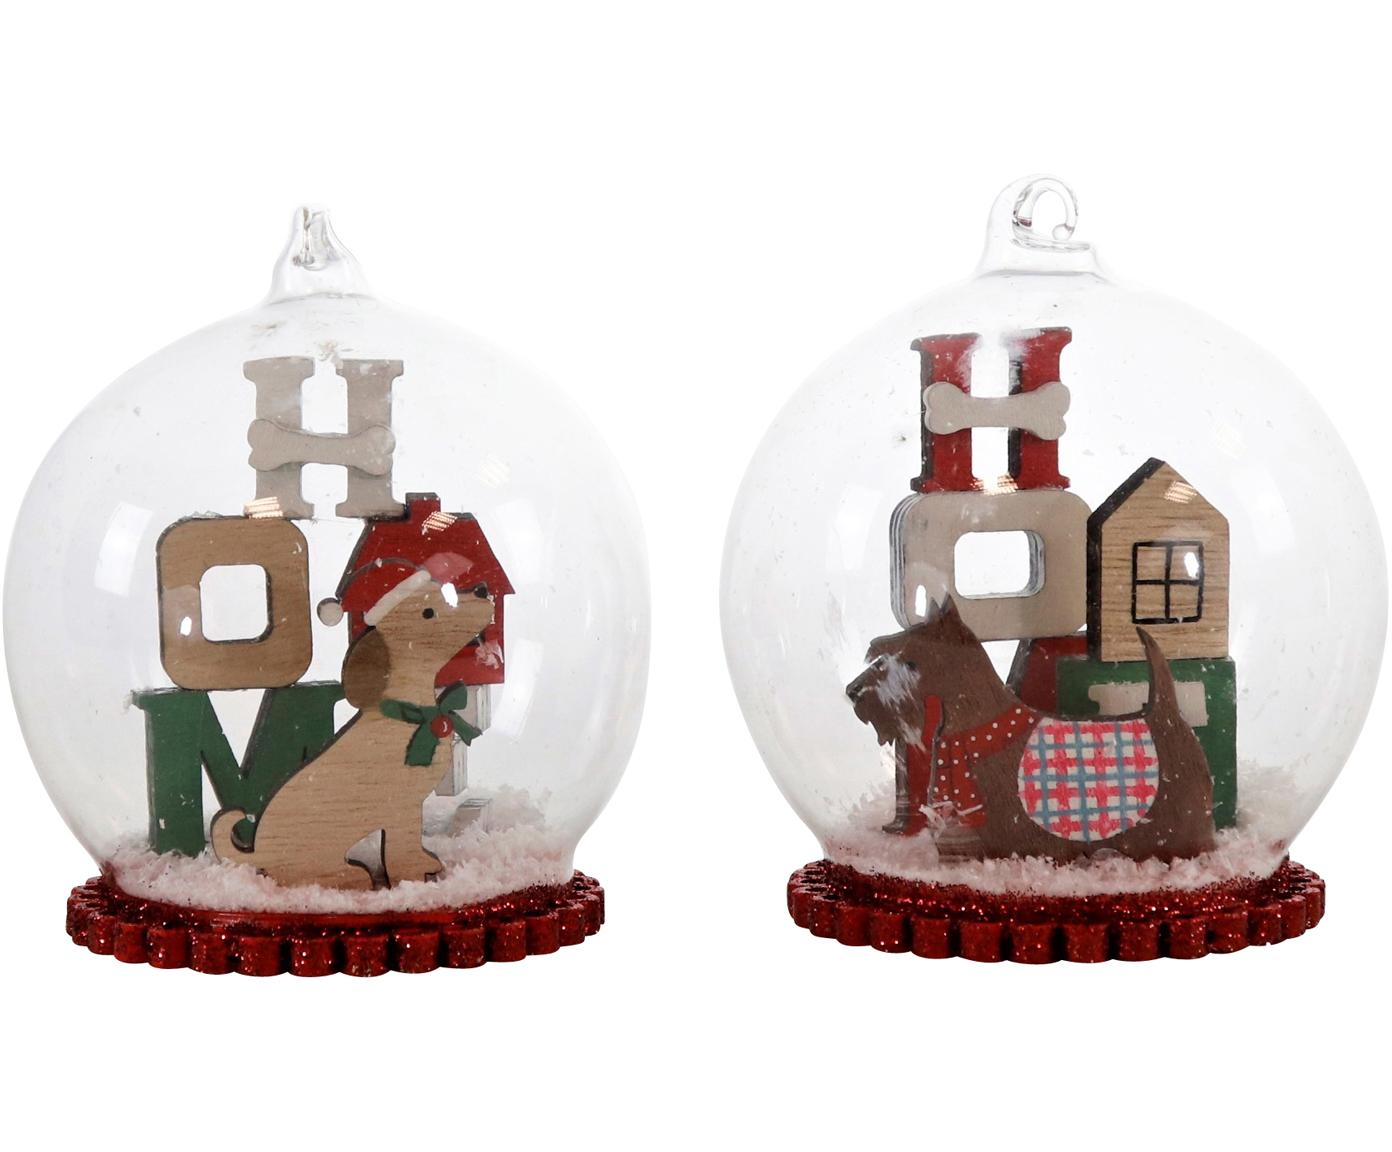 Glazen bollenset Christmas Dogs, 2-delig, Glas, hout, polystyreen, Multicolour, Ø 8 x H 11 cm